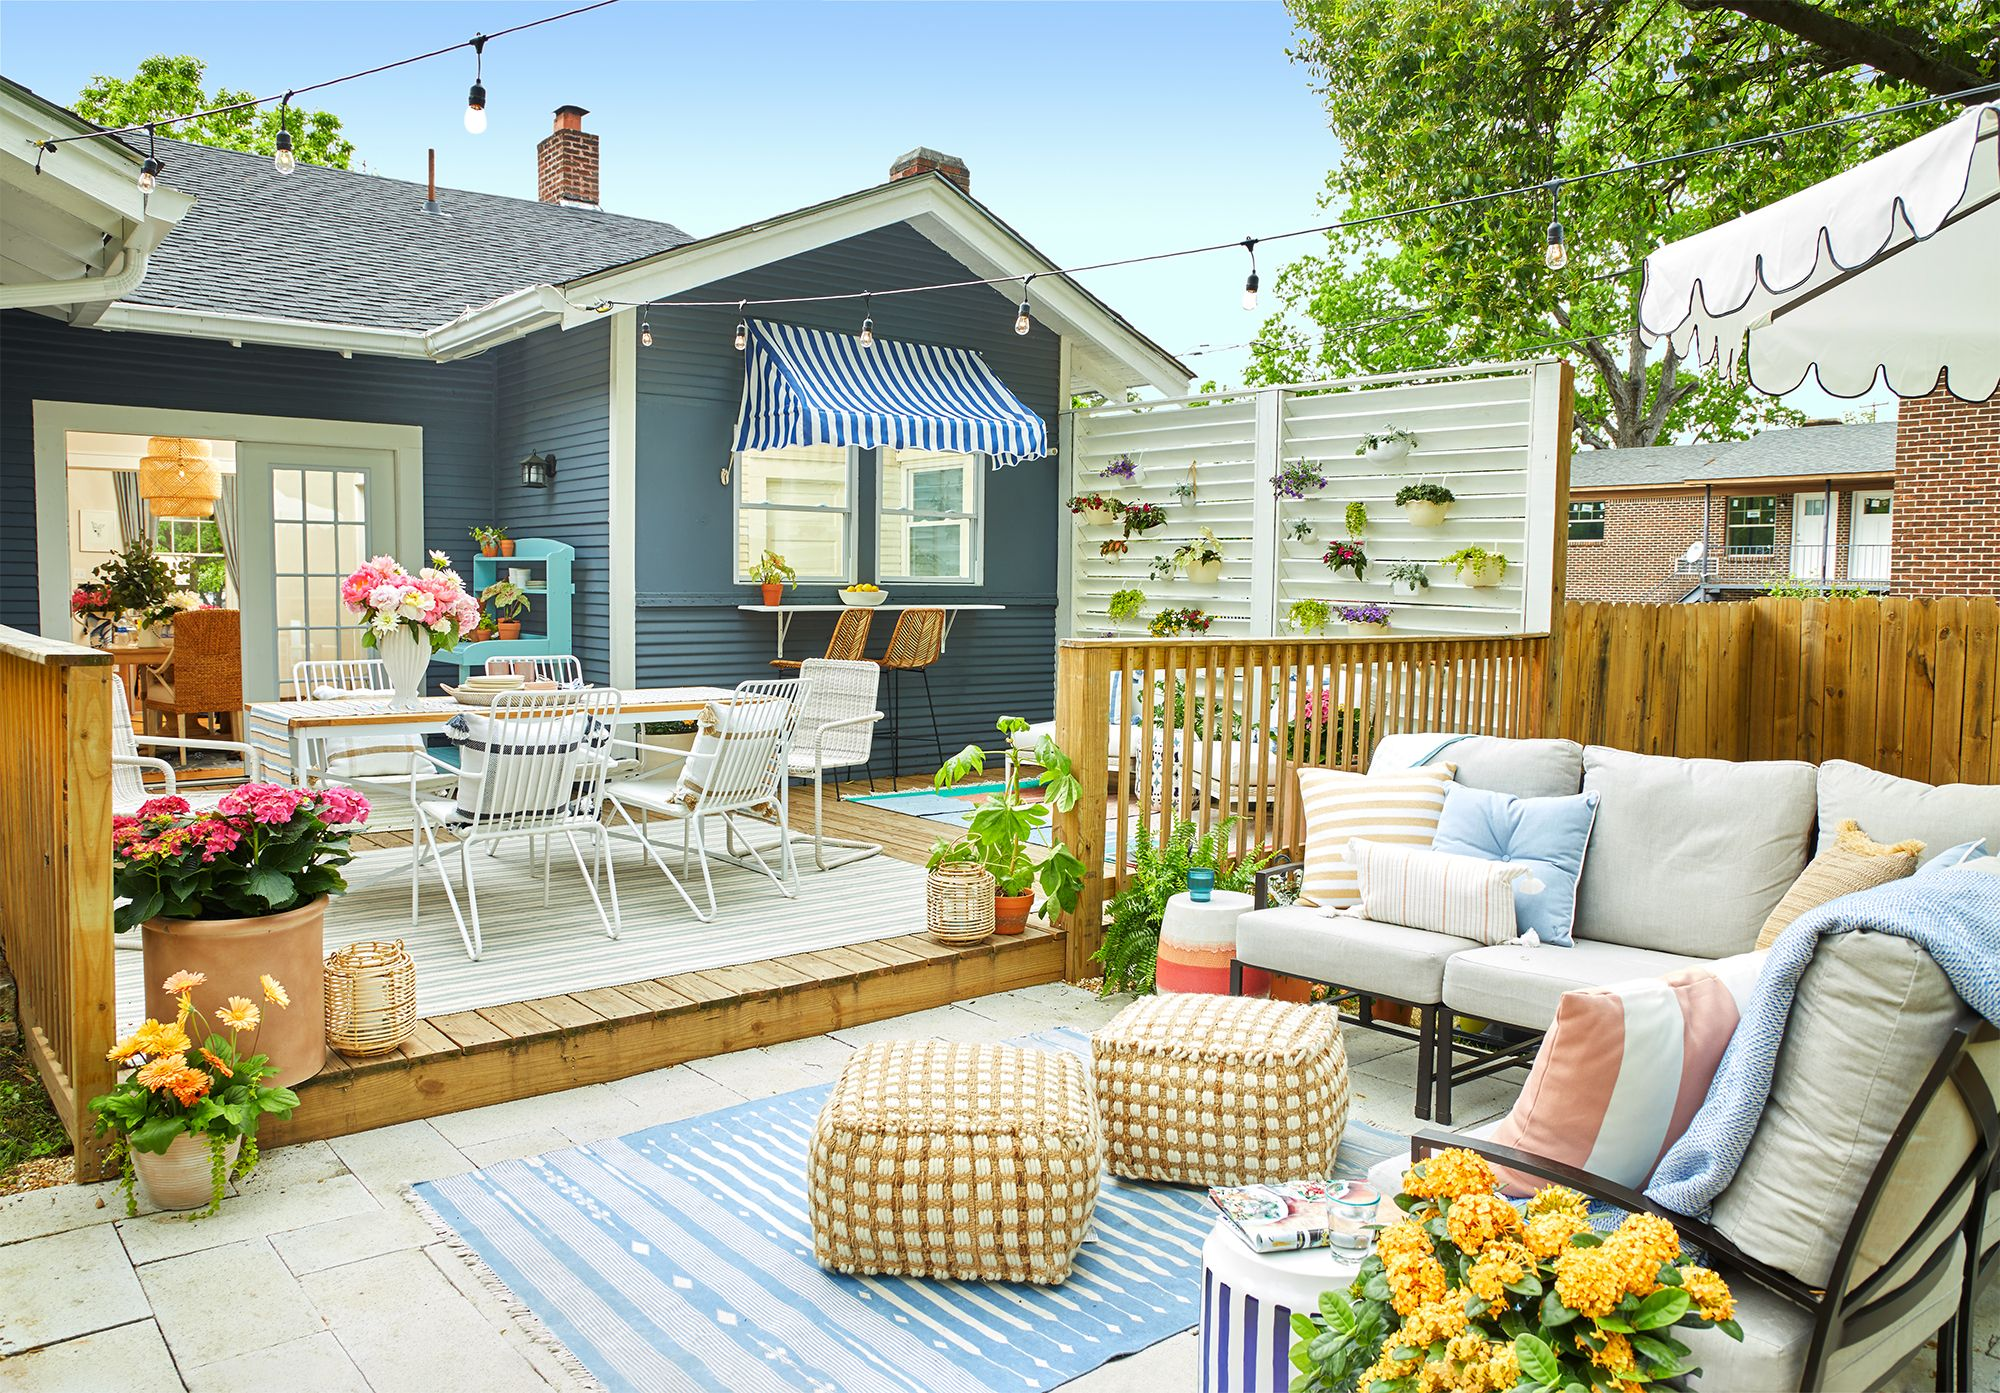 20 Small Backyard Ideas Small Backyard Landscaping And Patio Designs,Beginner Simple Aari Work Blouse Designs Images